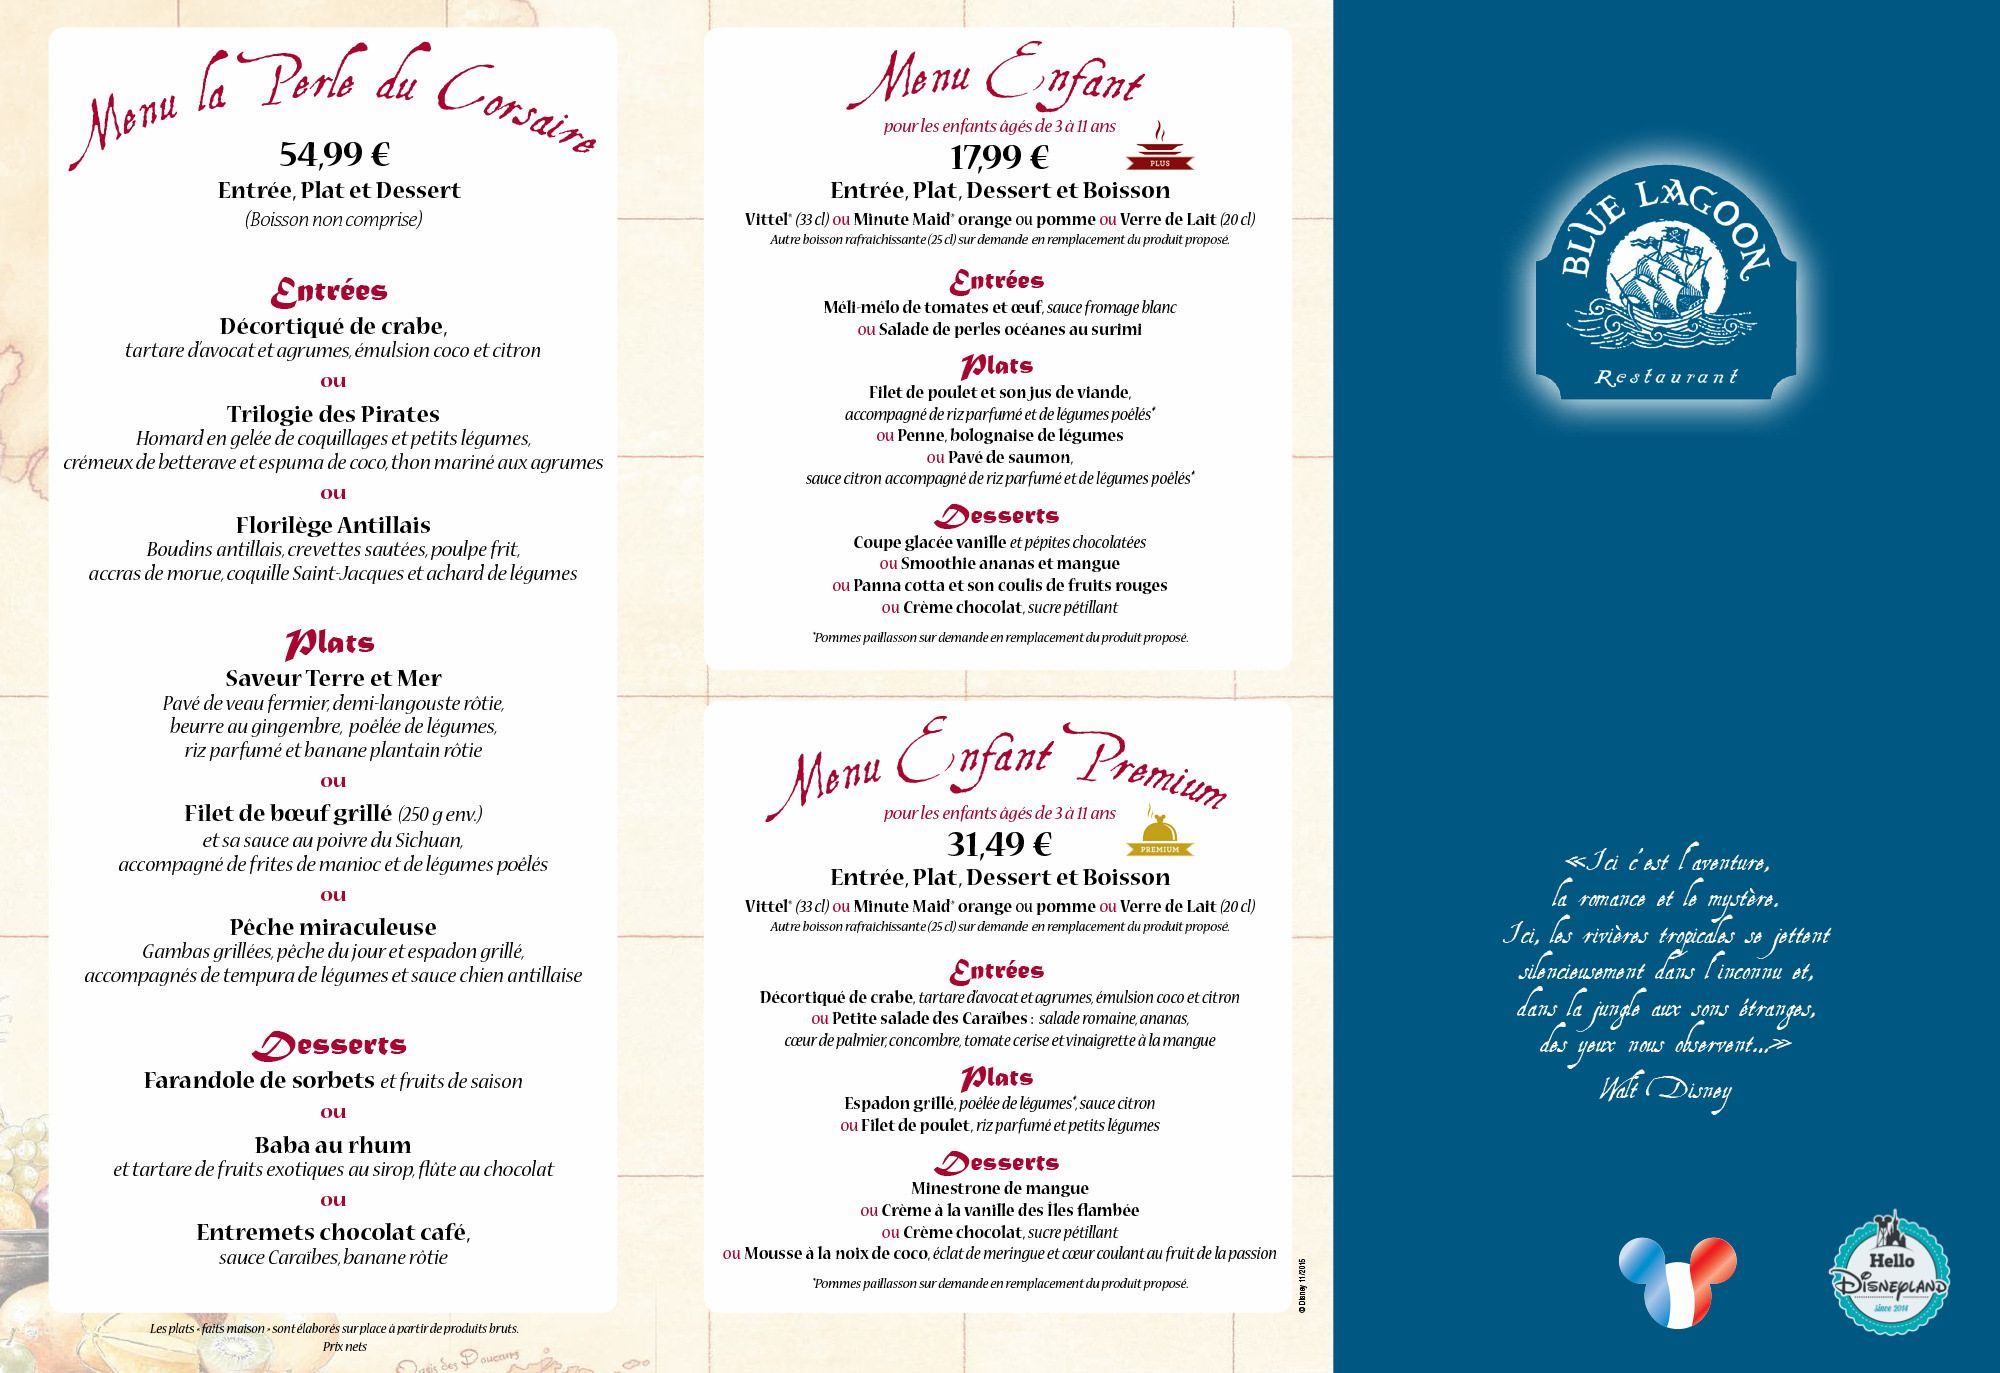 blue lagoon restaurant menu 2015 2016 poirates des caraibes - Blue Restaurant 2015